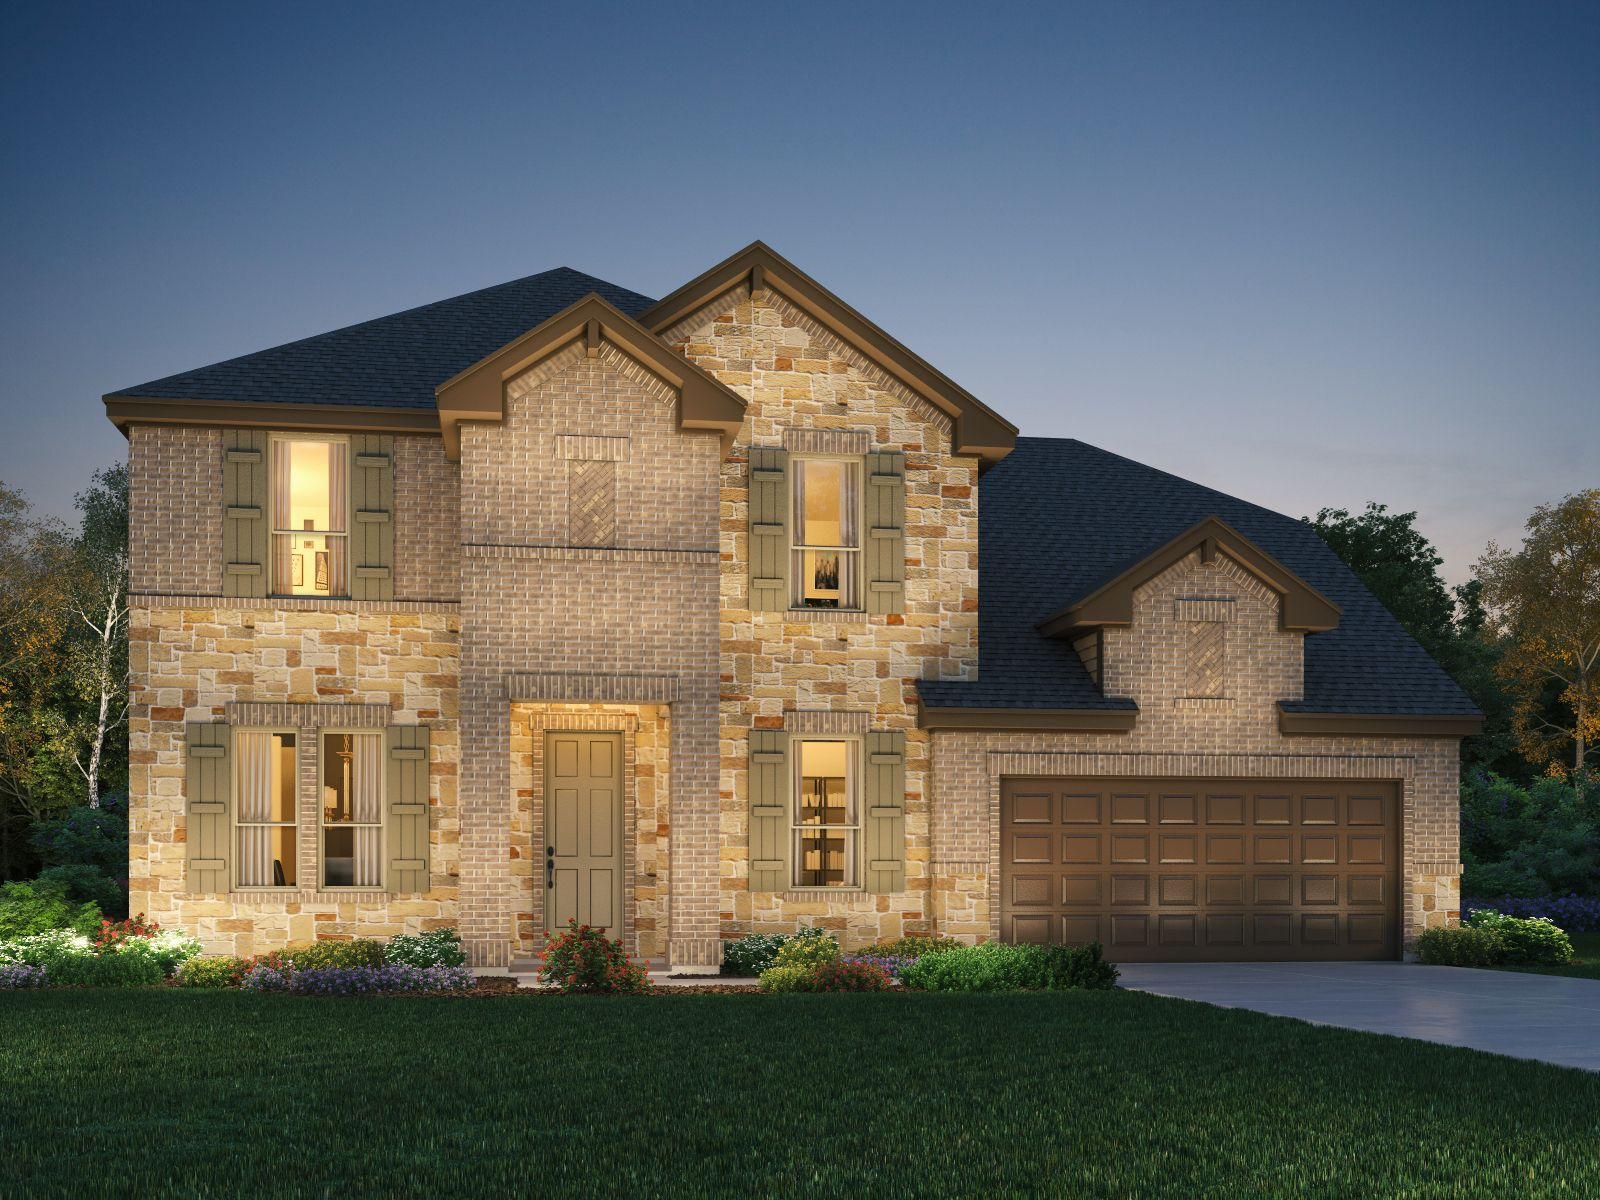 Imperial - Artisan Collection by Meritage Homes - Brandon Scott